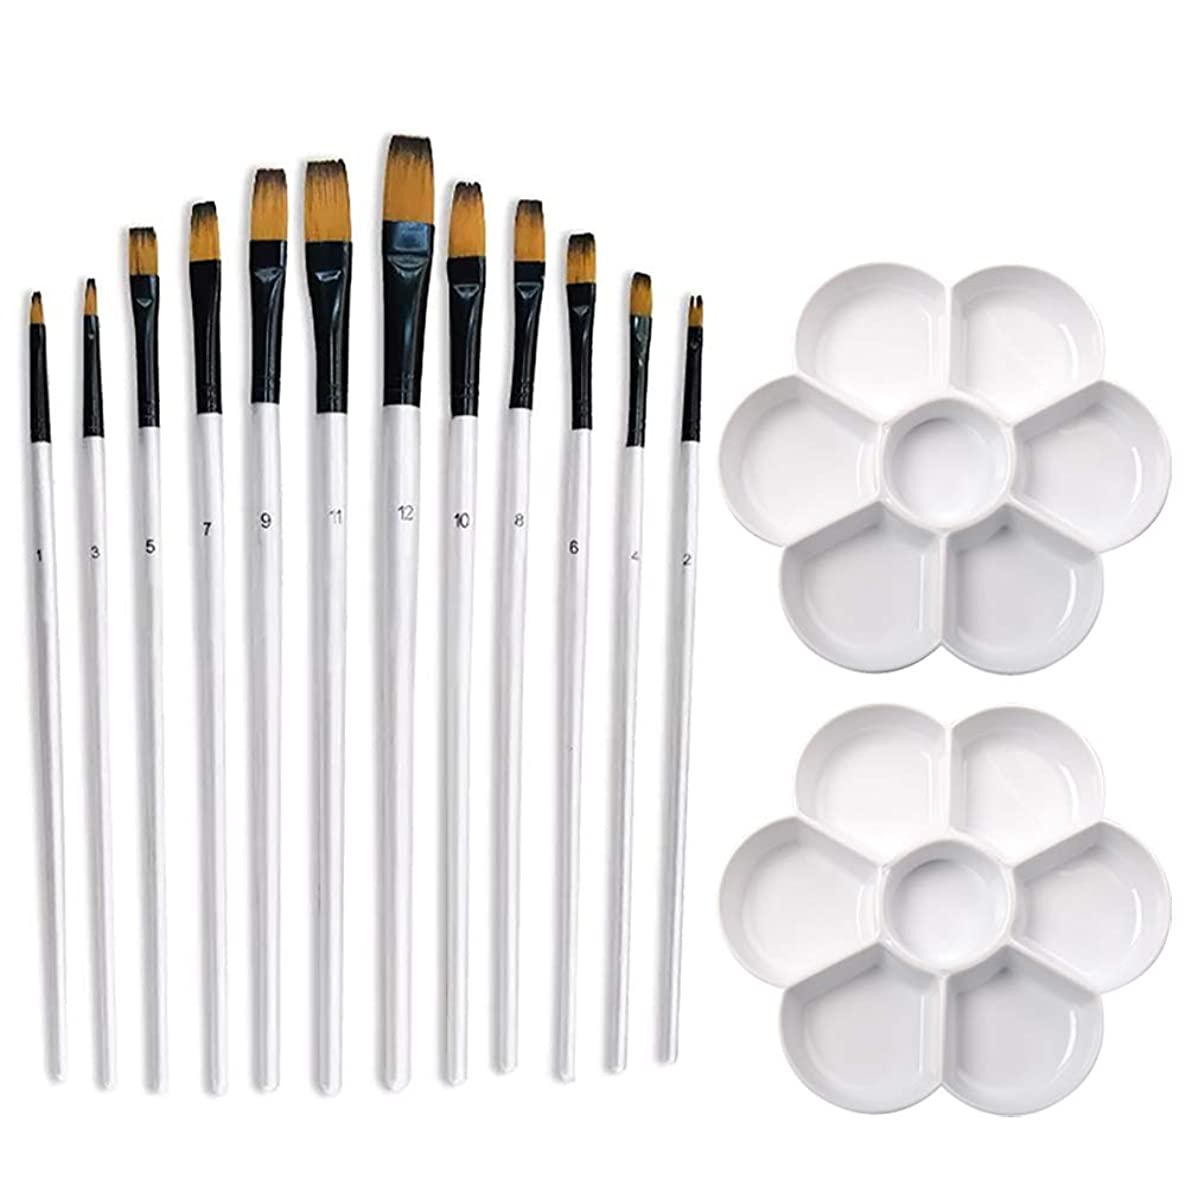 Coobbar Artists Paint Brush Set, 12 Pieces Flat Pointed Tip Paint Brushes with 2 Pieces Palette for Watercolor, Acrylic, Oil, Great for Artists & Kids, Bristles